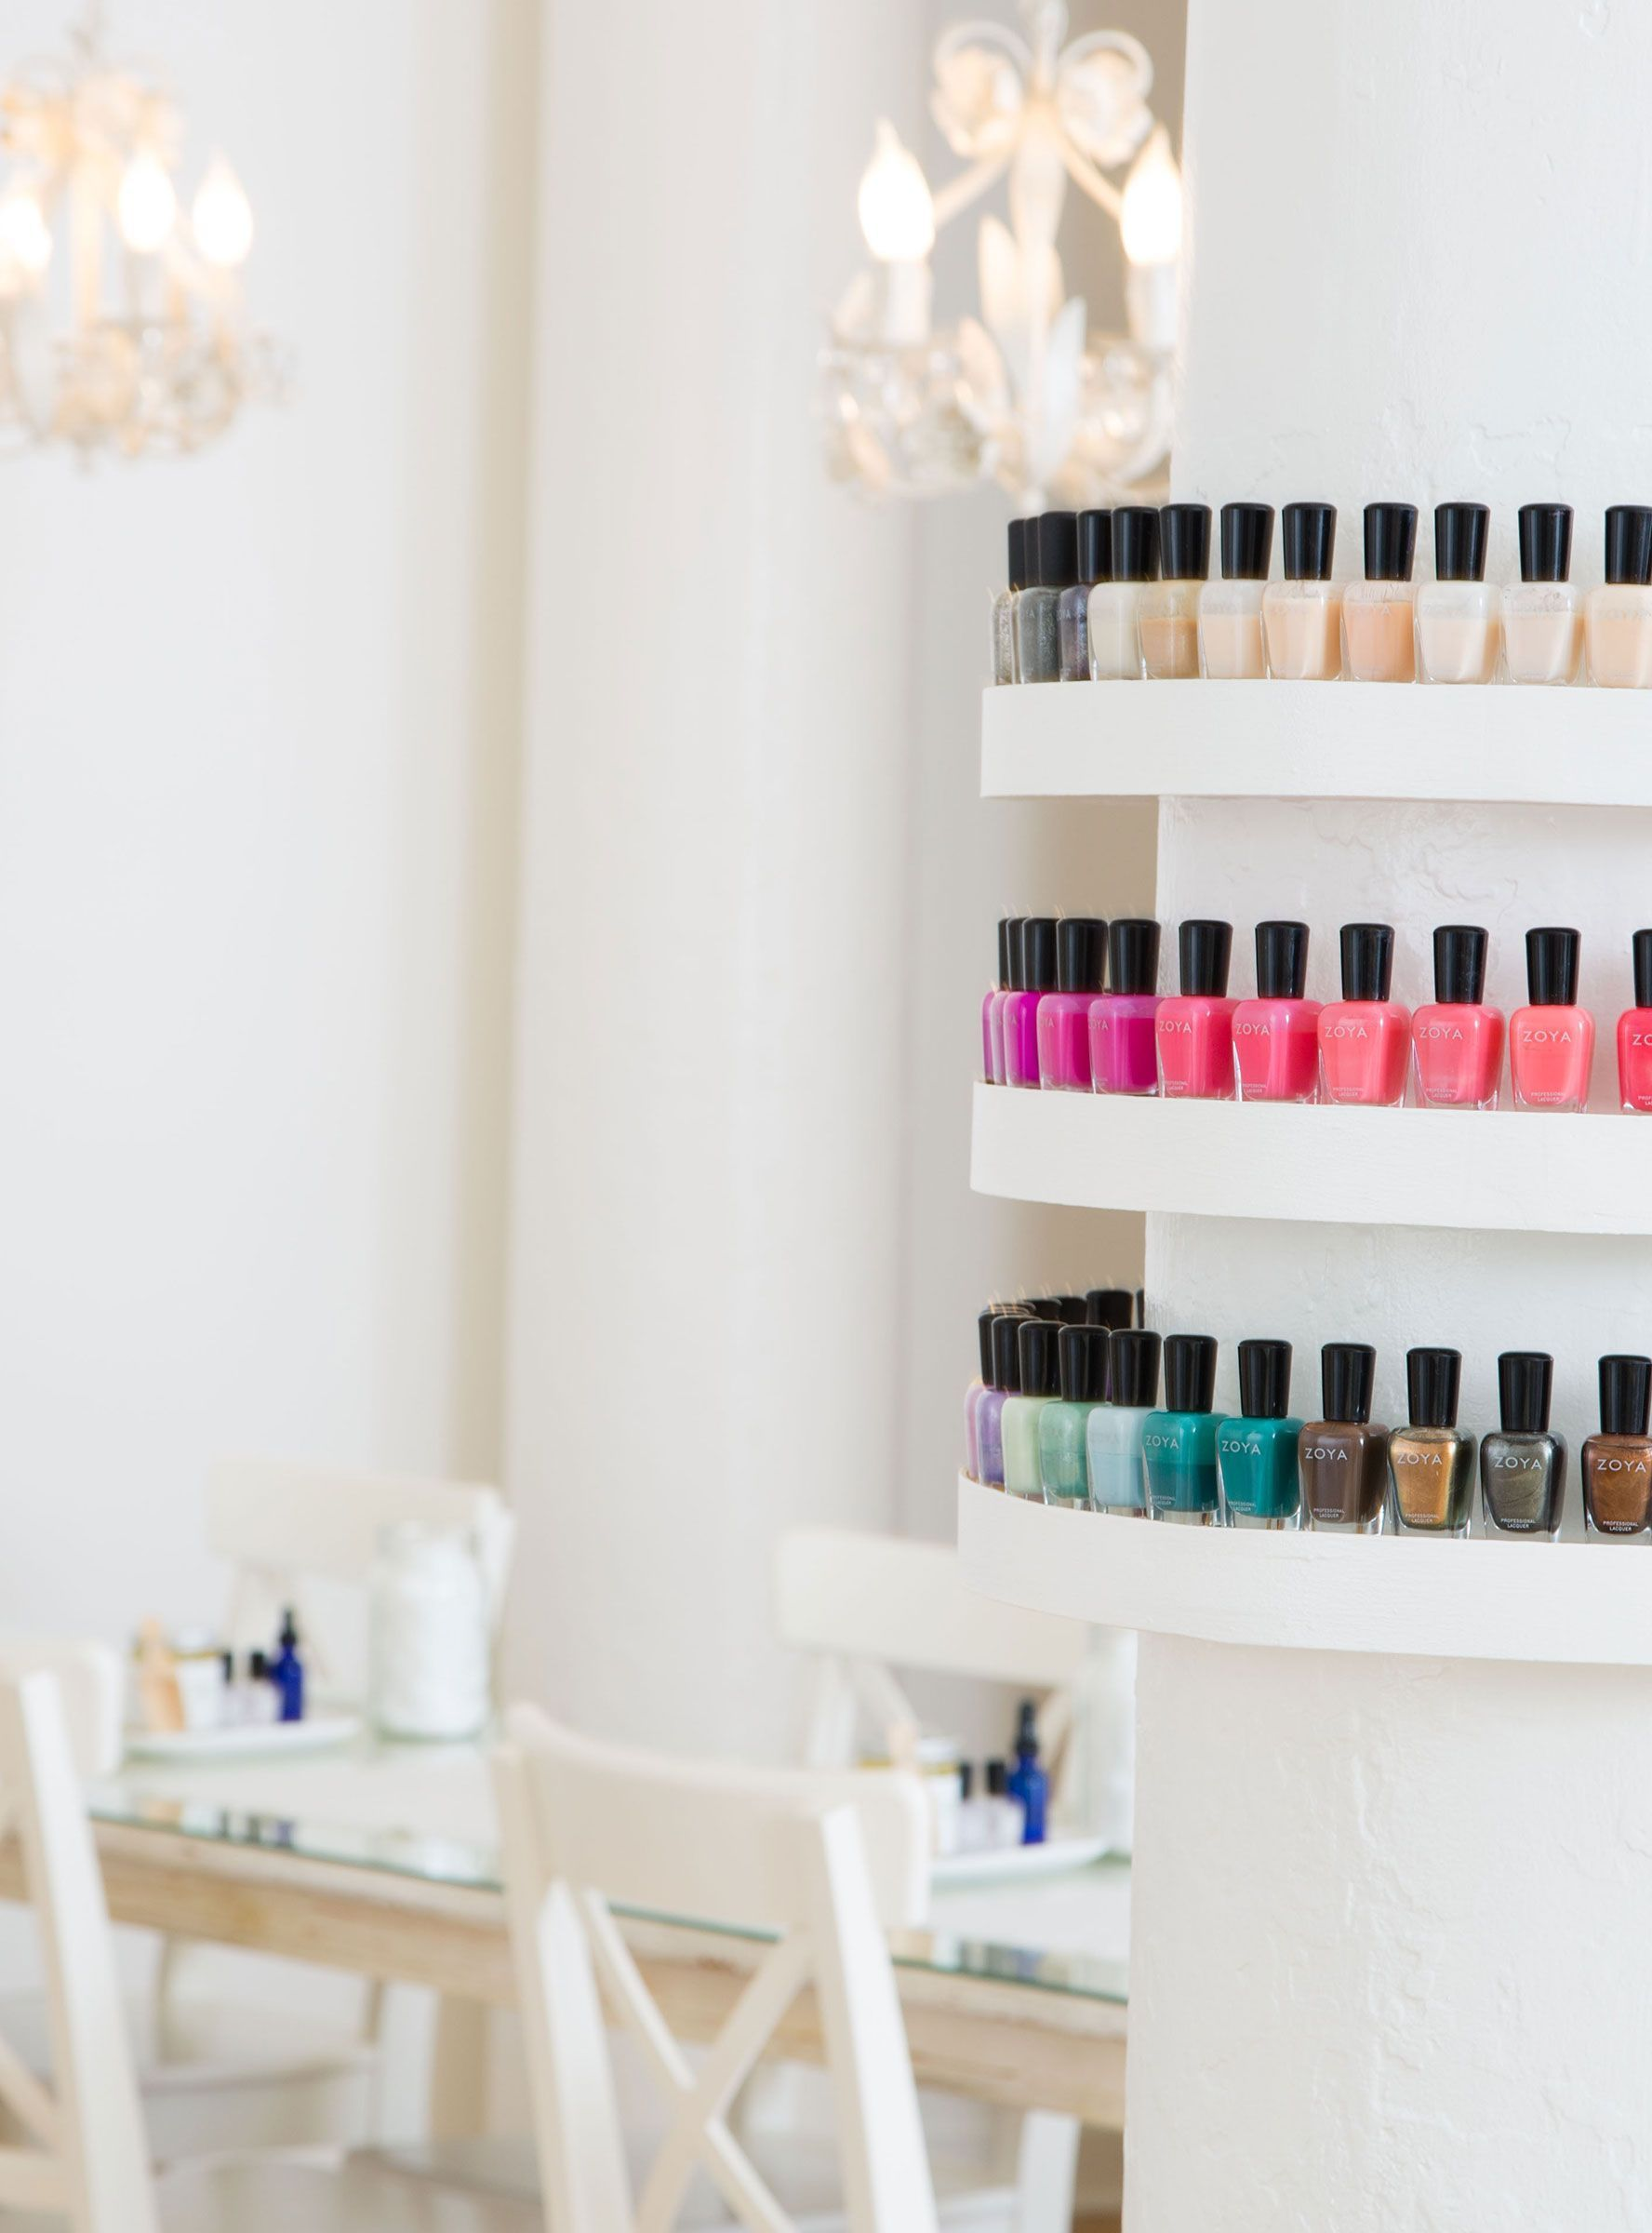 The Best Of New York Nail Salons | Nail salons, Salons and Nail trends